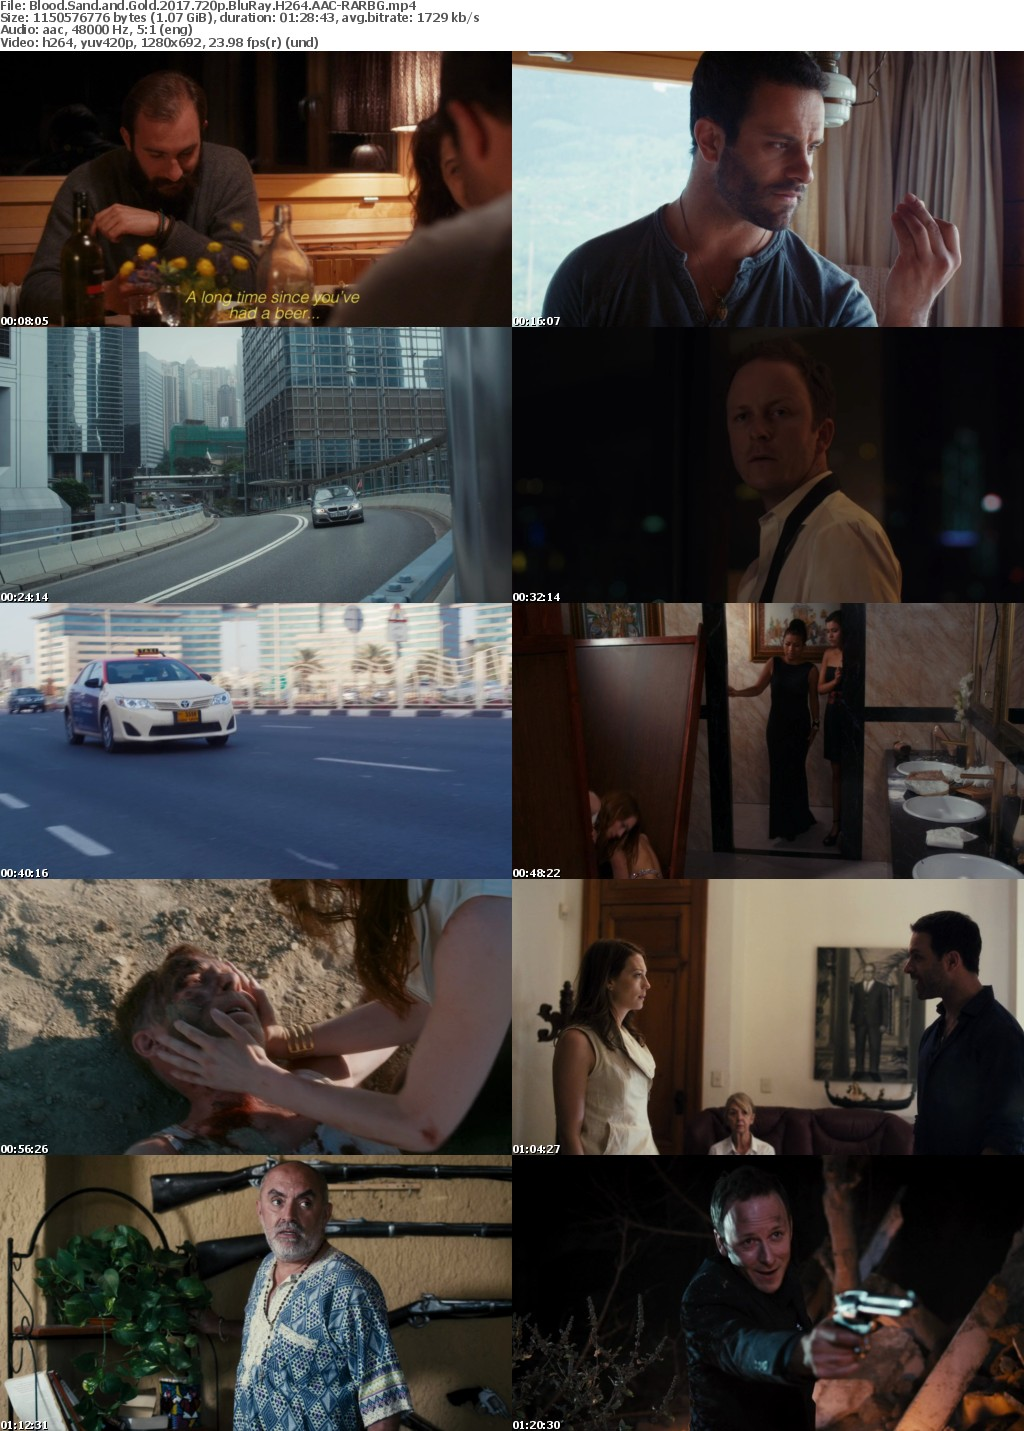 Blood Sand and Gold 2017 720p BluRay H264 AAC-RARBG